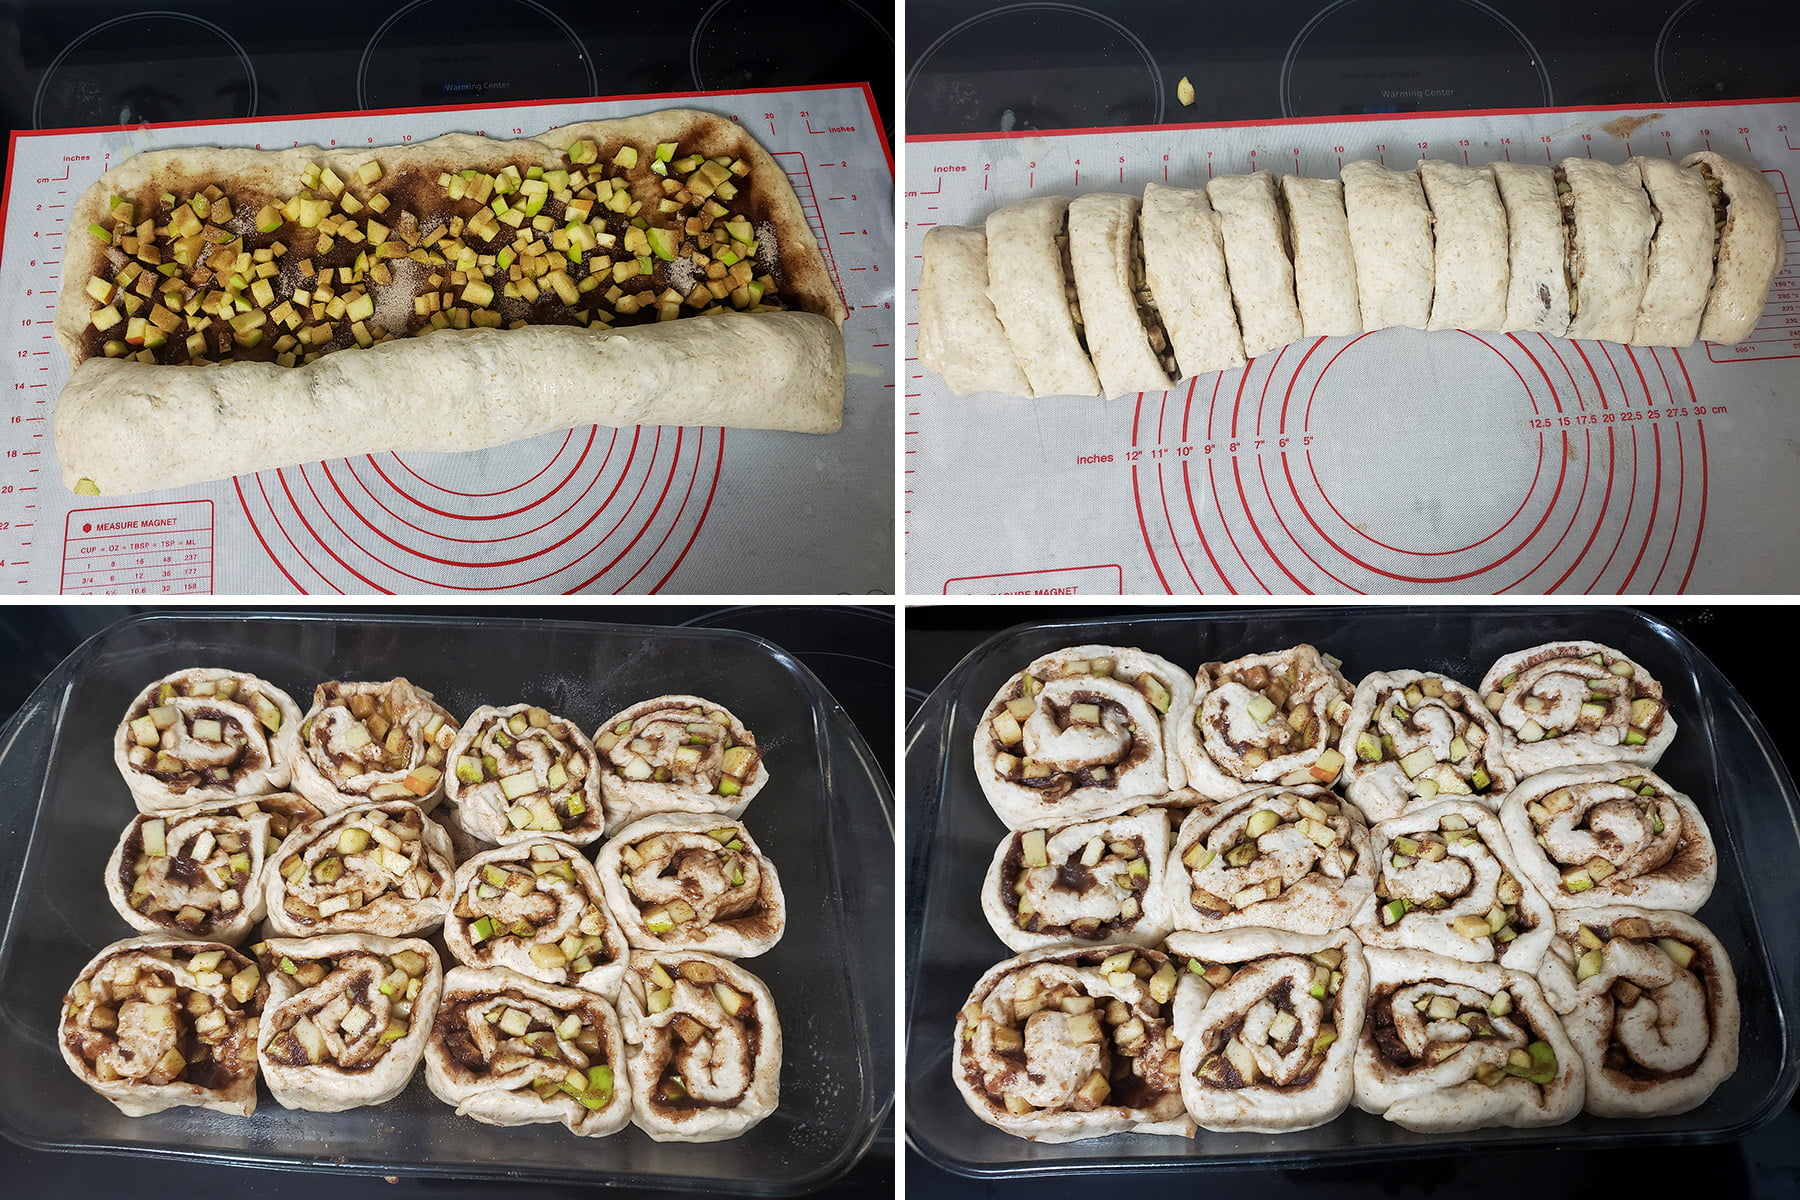 A 4 photo collage showing the progression from rolling up the cinnamon rolls, through cutting them and placing them in the pan, to what they look like after the final rising time.